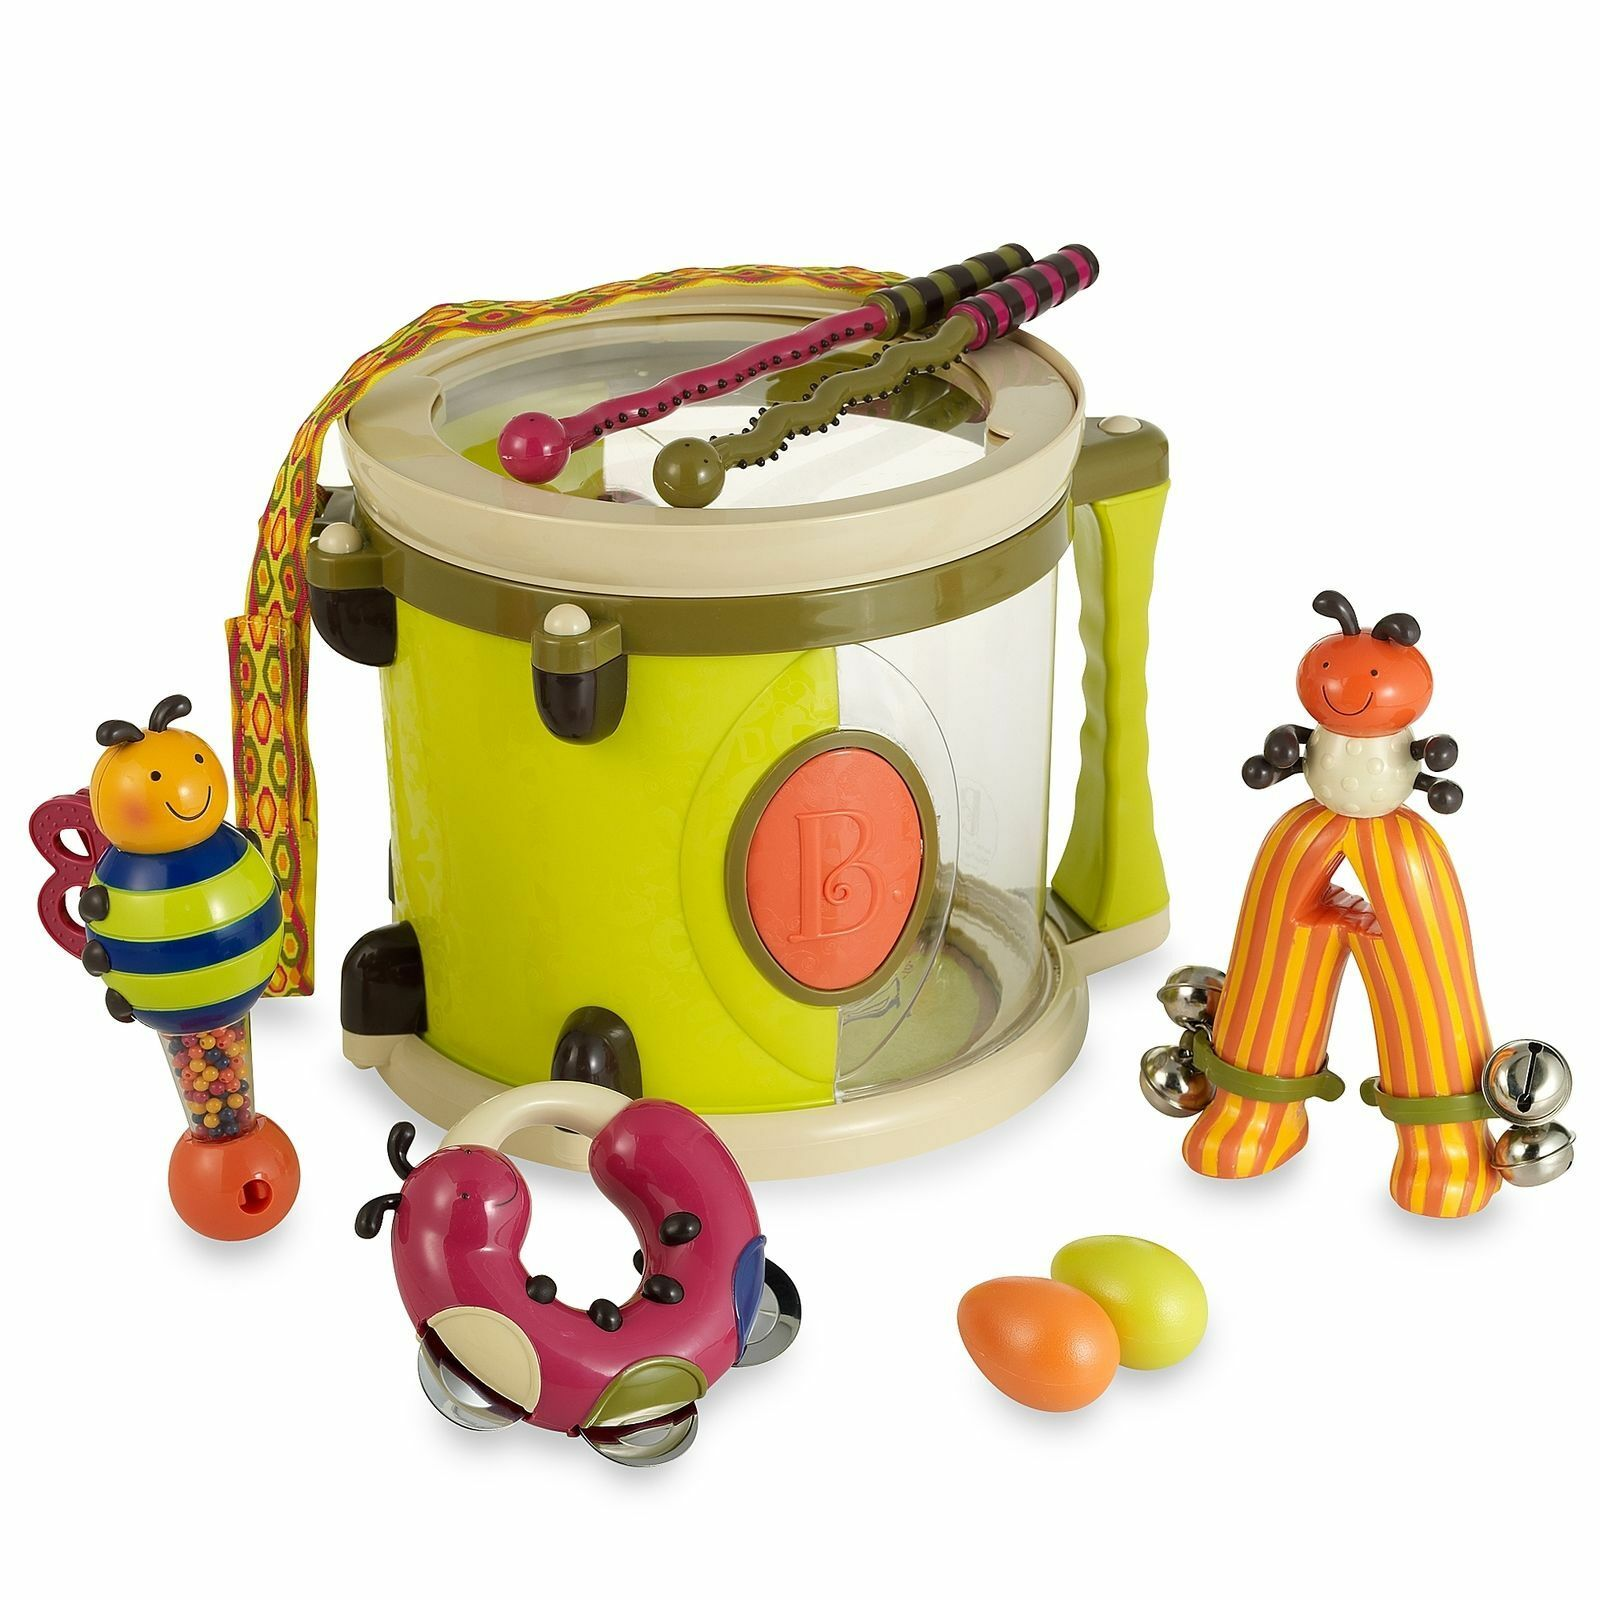 B Parum Pum Pum Toy Drum Set Musical Toys Bug Instruments for Toddlers NEW